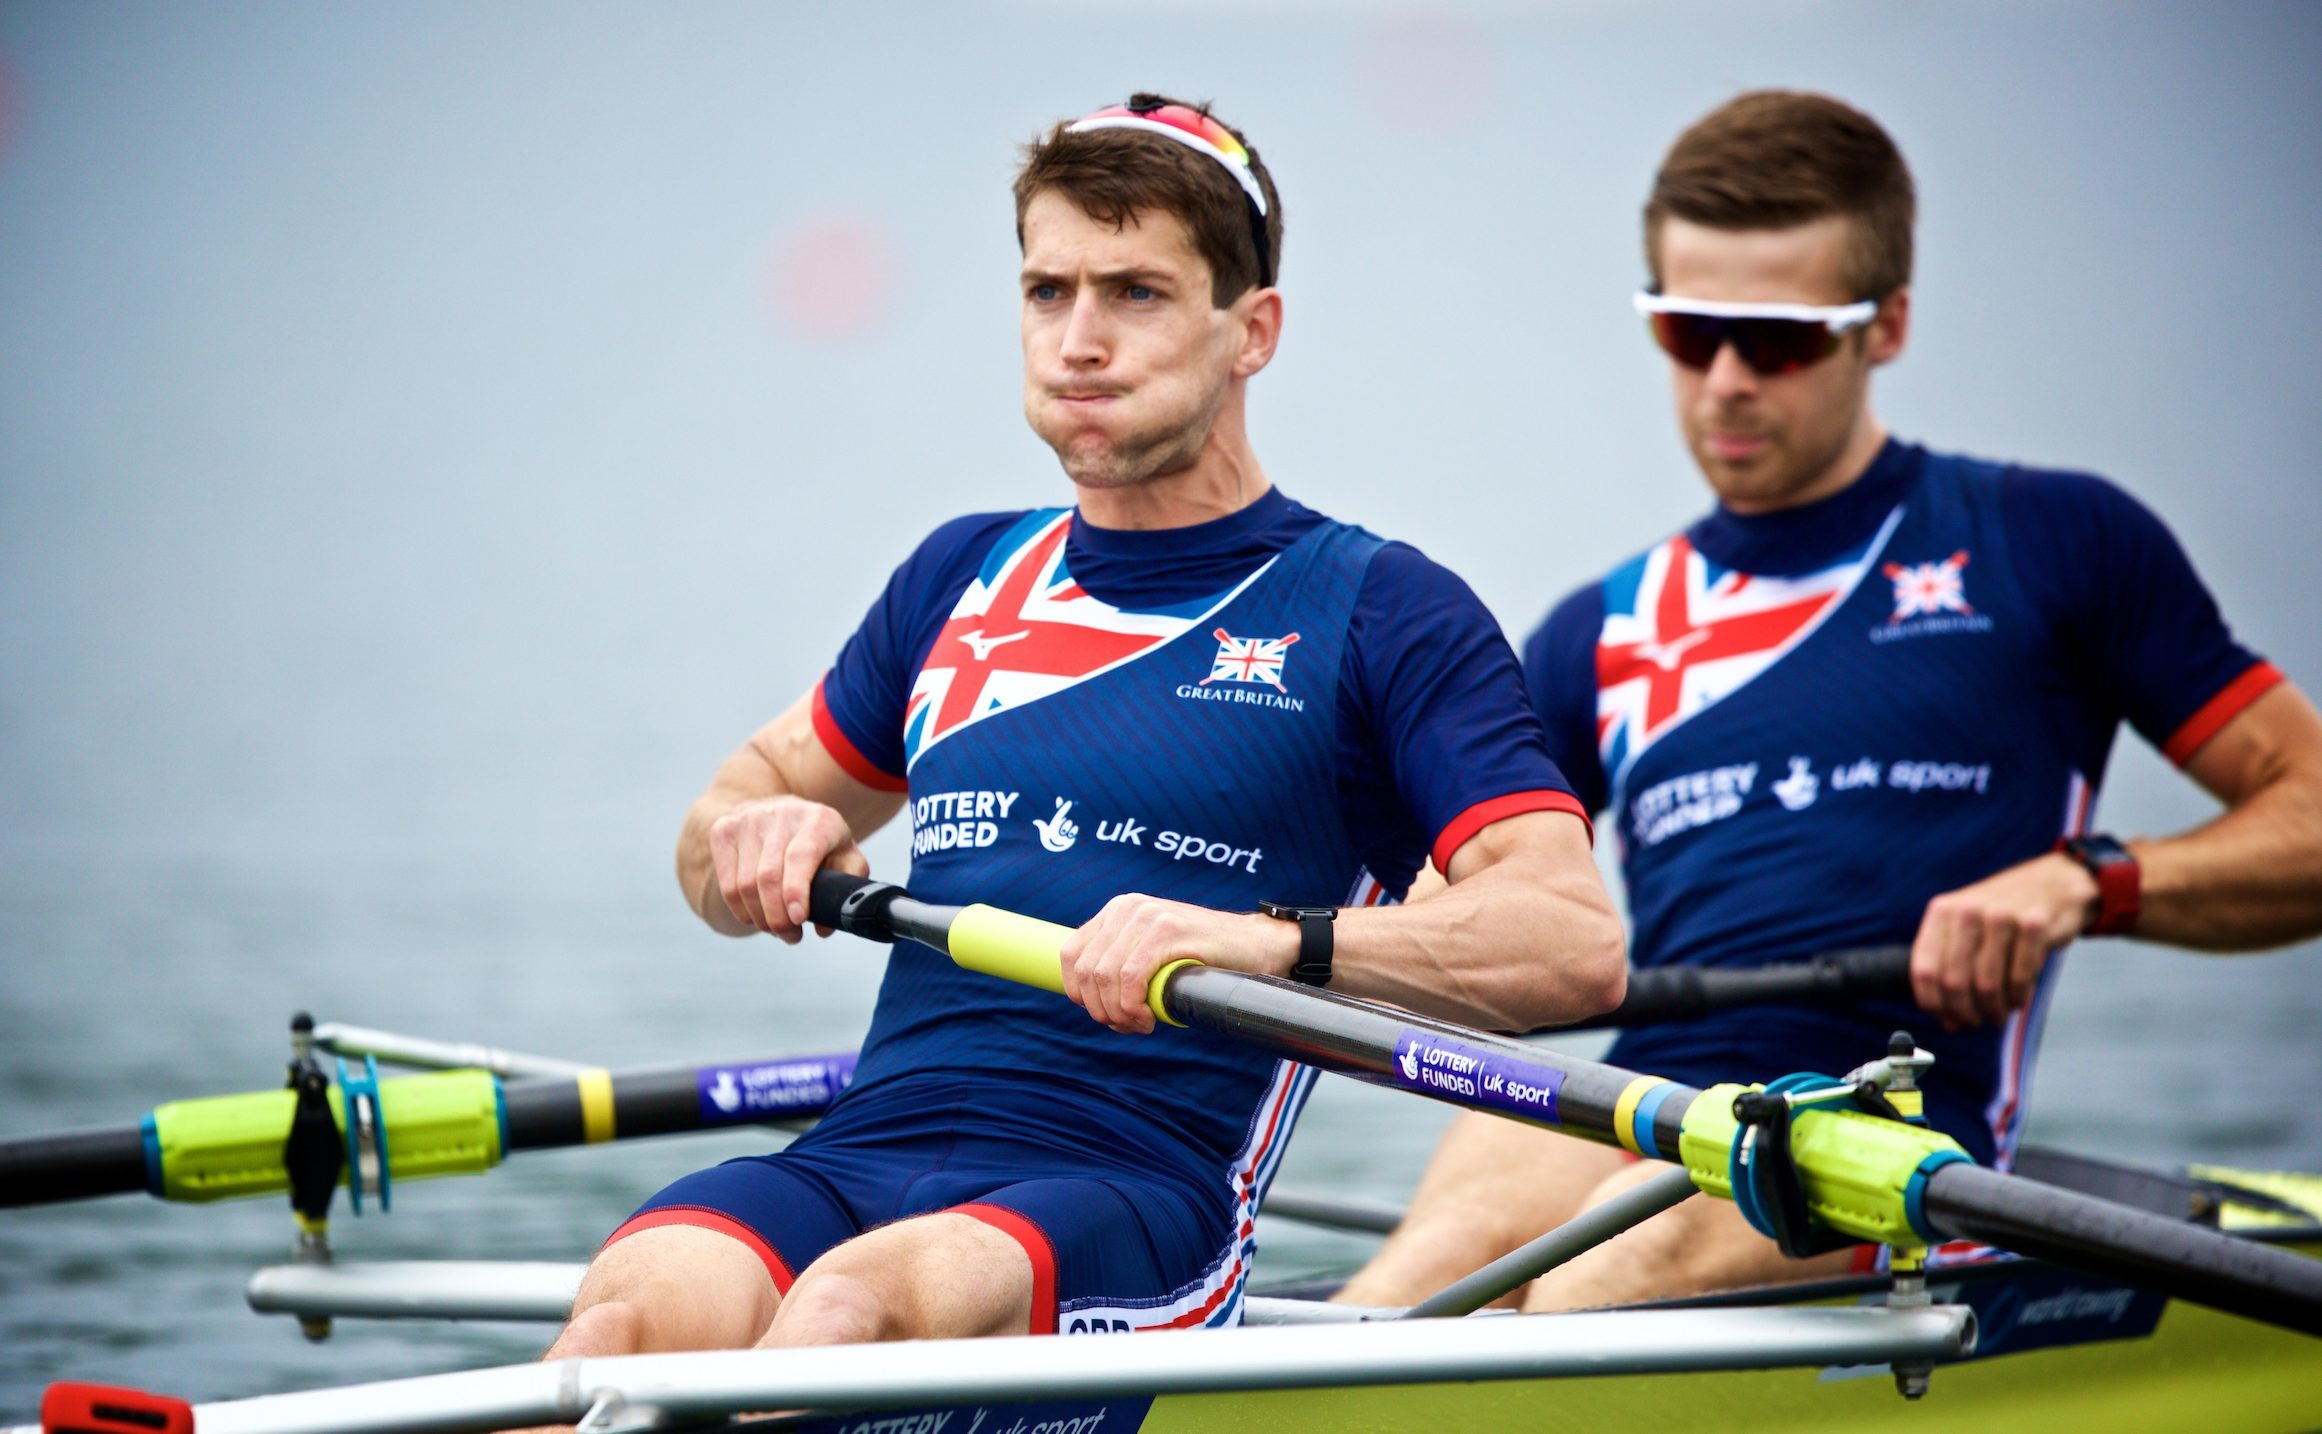 Sam Scrimgeour (left) with rowing partner Joel Cassells.